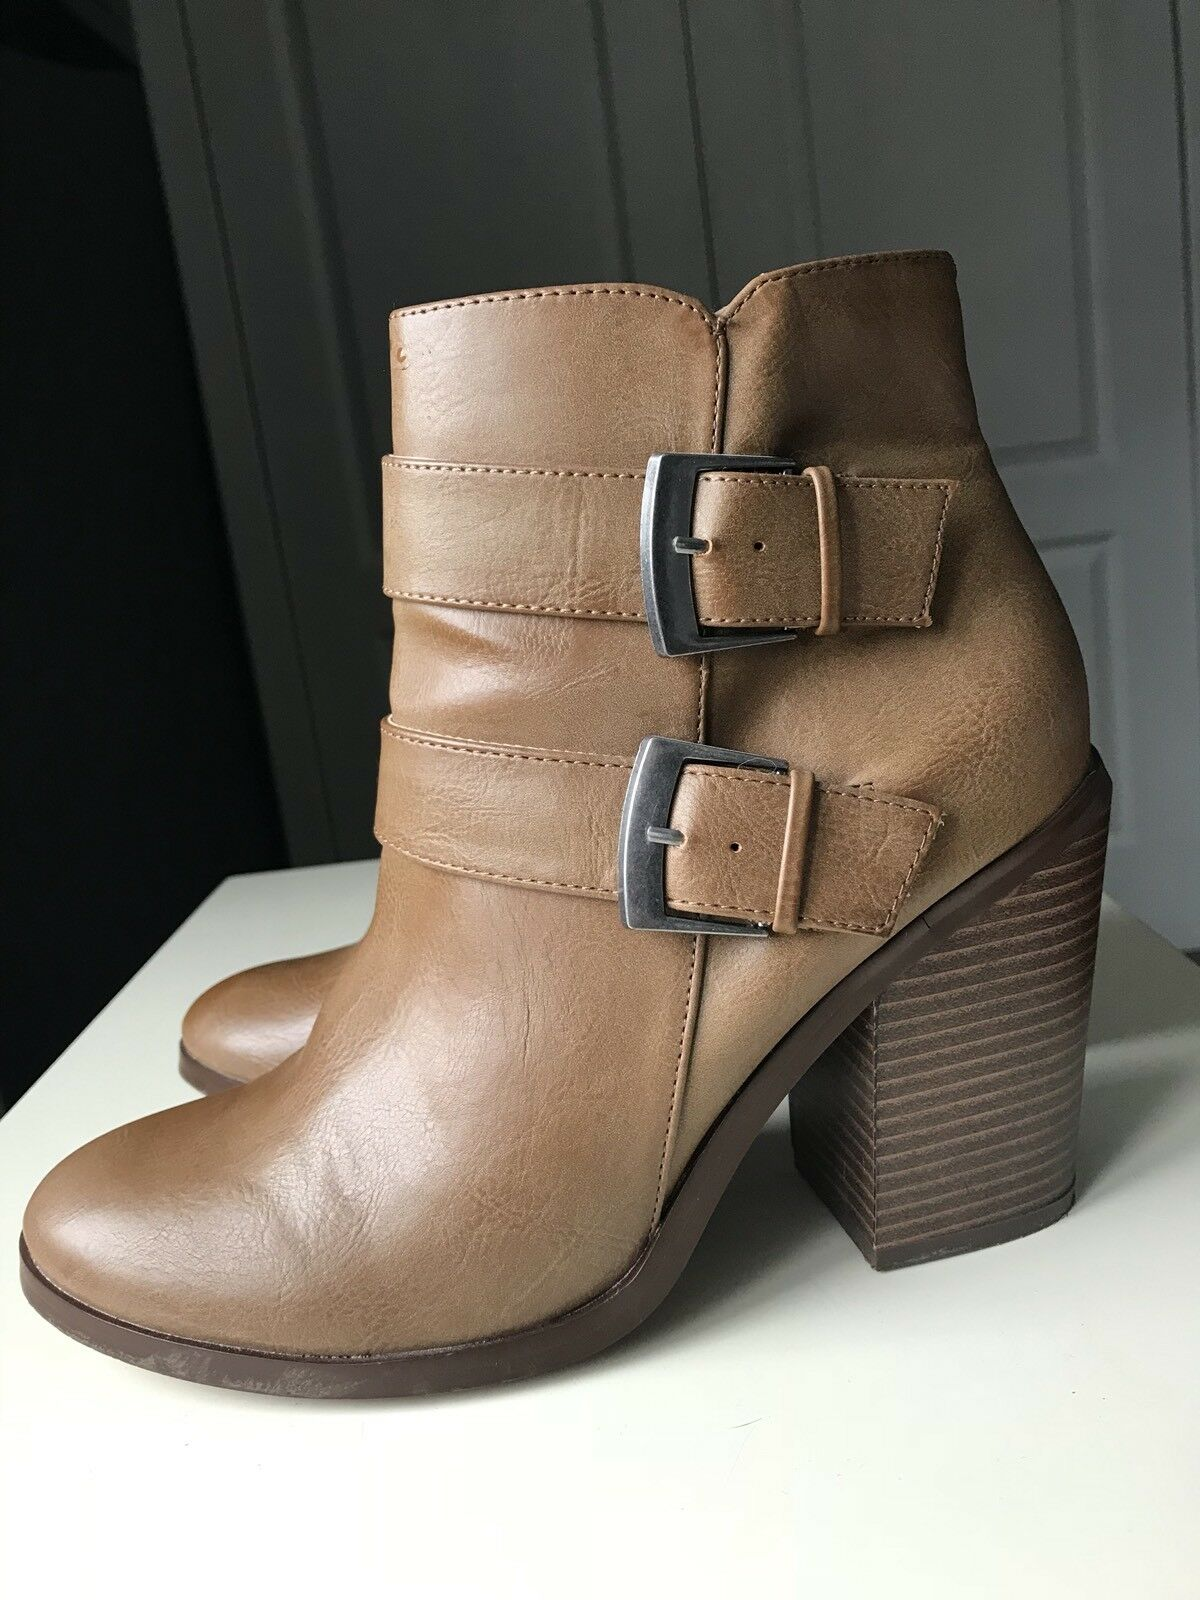 Dgoldthy Perkins Designer Brown Women Ankle High Heel shoes Boot Size 7 40